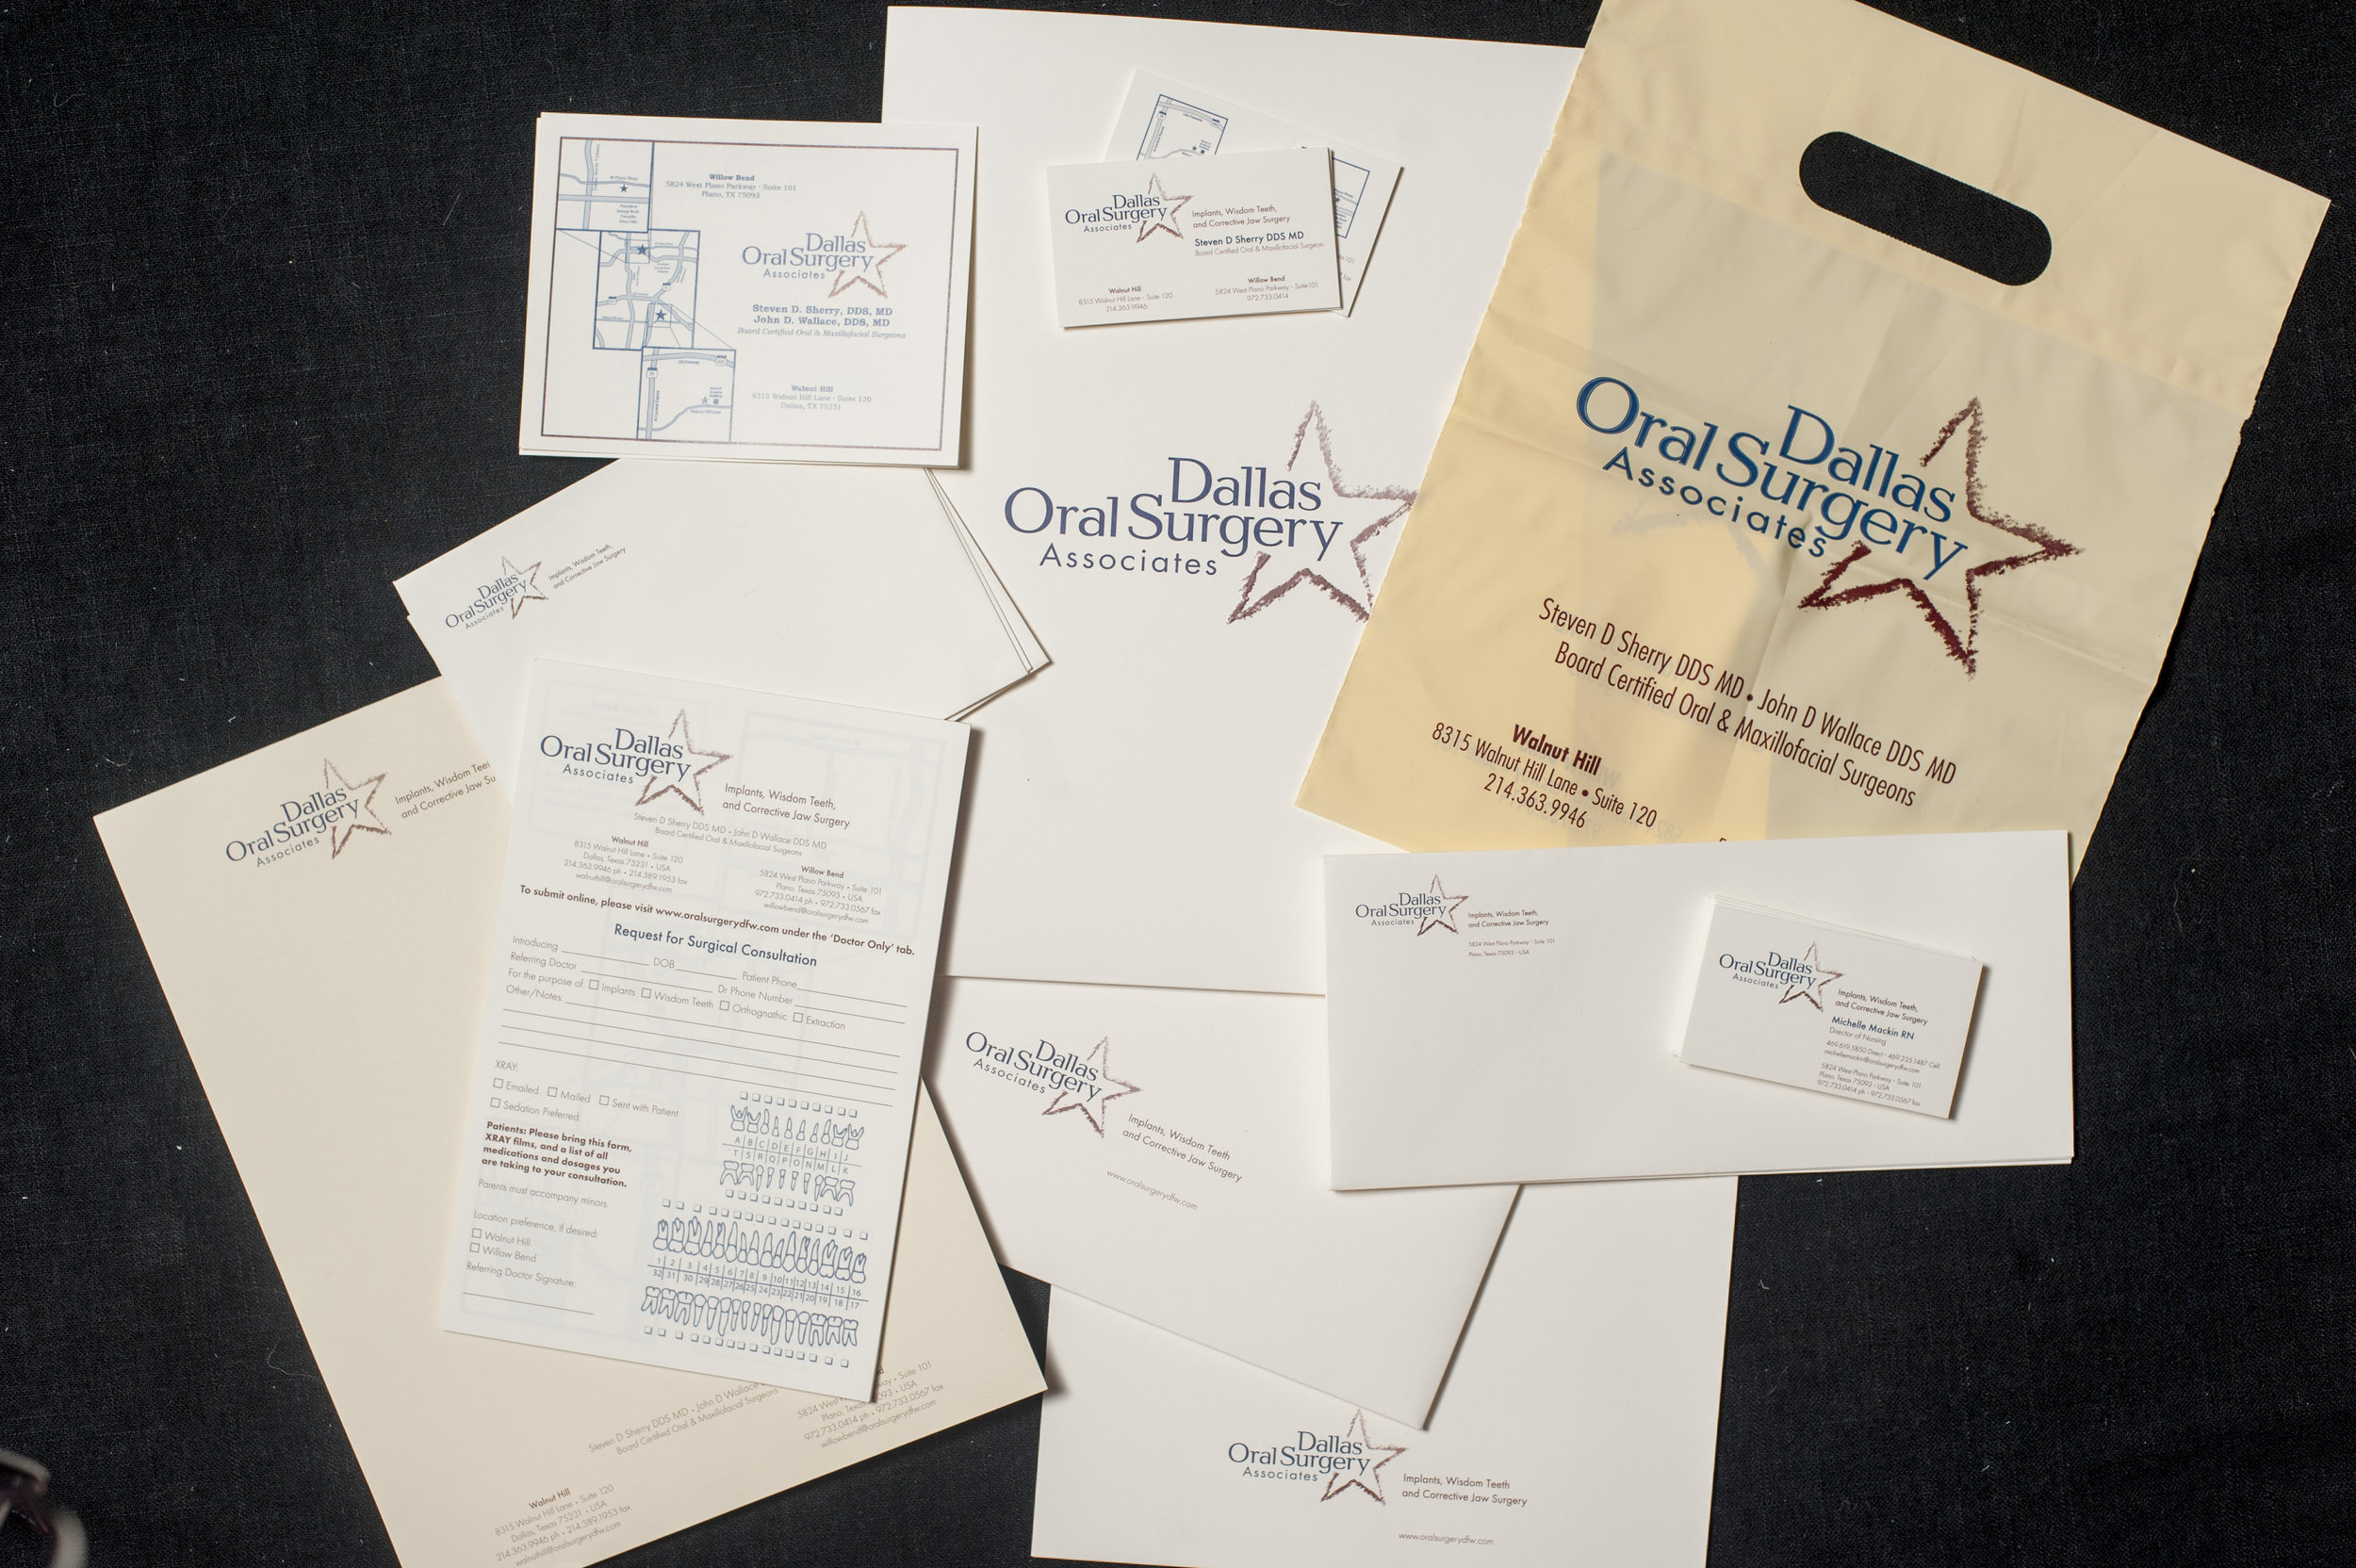 A full collection of custom printed business literature for Dallas Oral Surgery Associates, including embossed business cards, appointment cards, bags, notepads, folders, envelopes, and more.